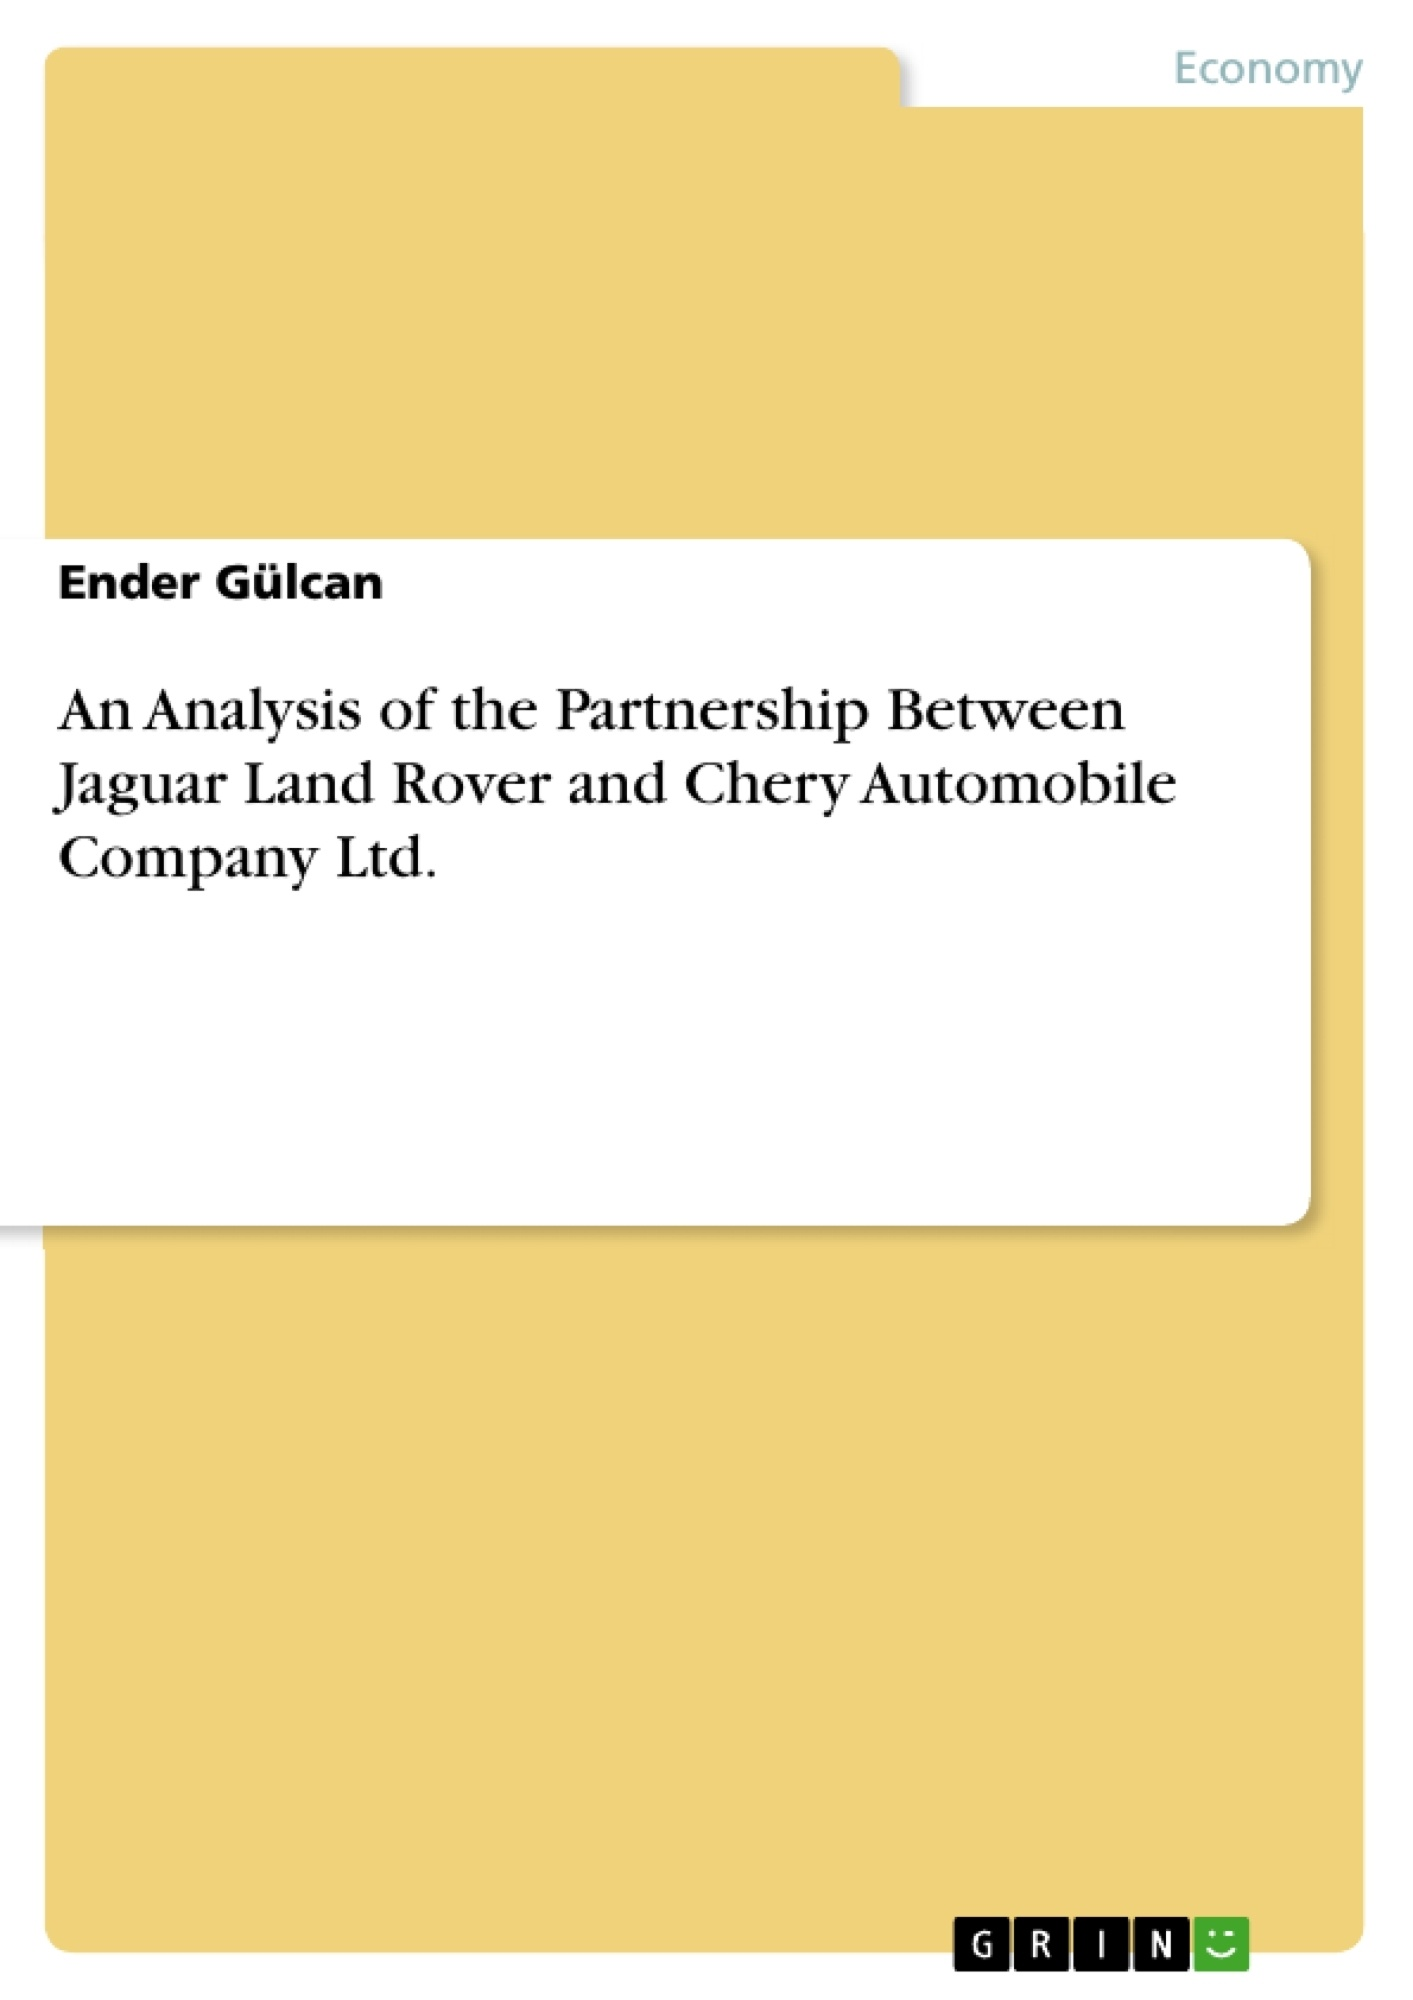 Title: An Analysis of the Partnership Between Jaguar Land Rover and Chery Automobile Company Ltd.